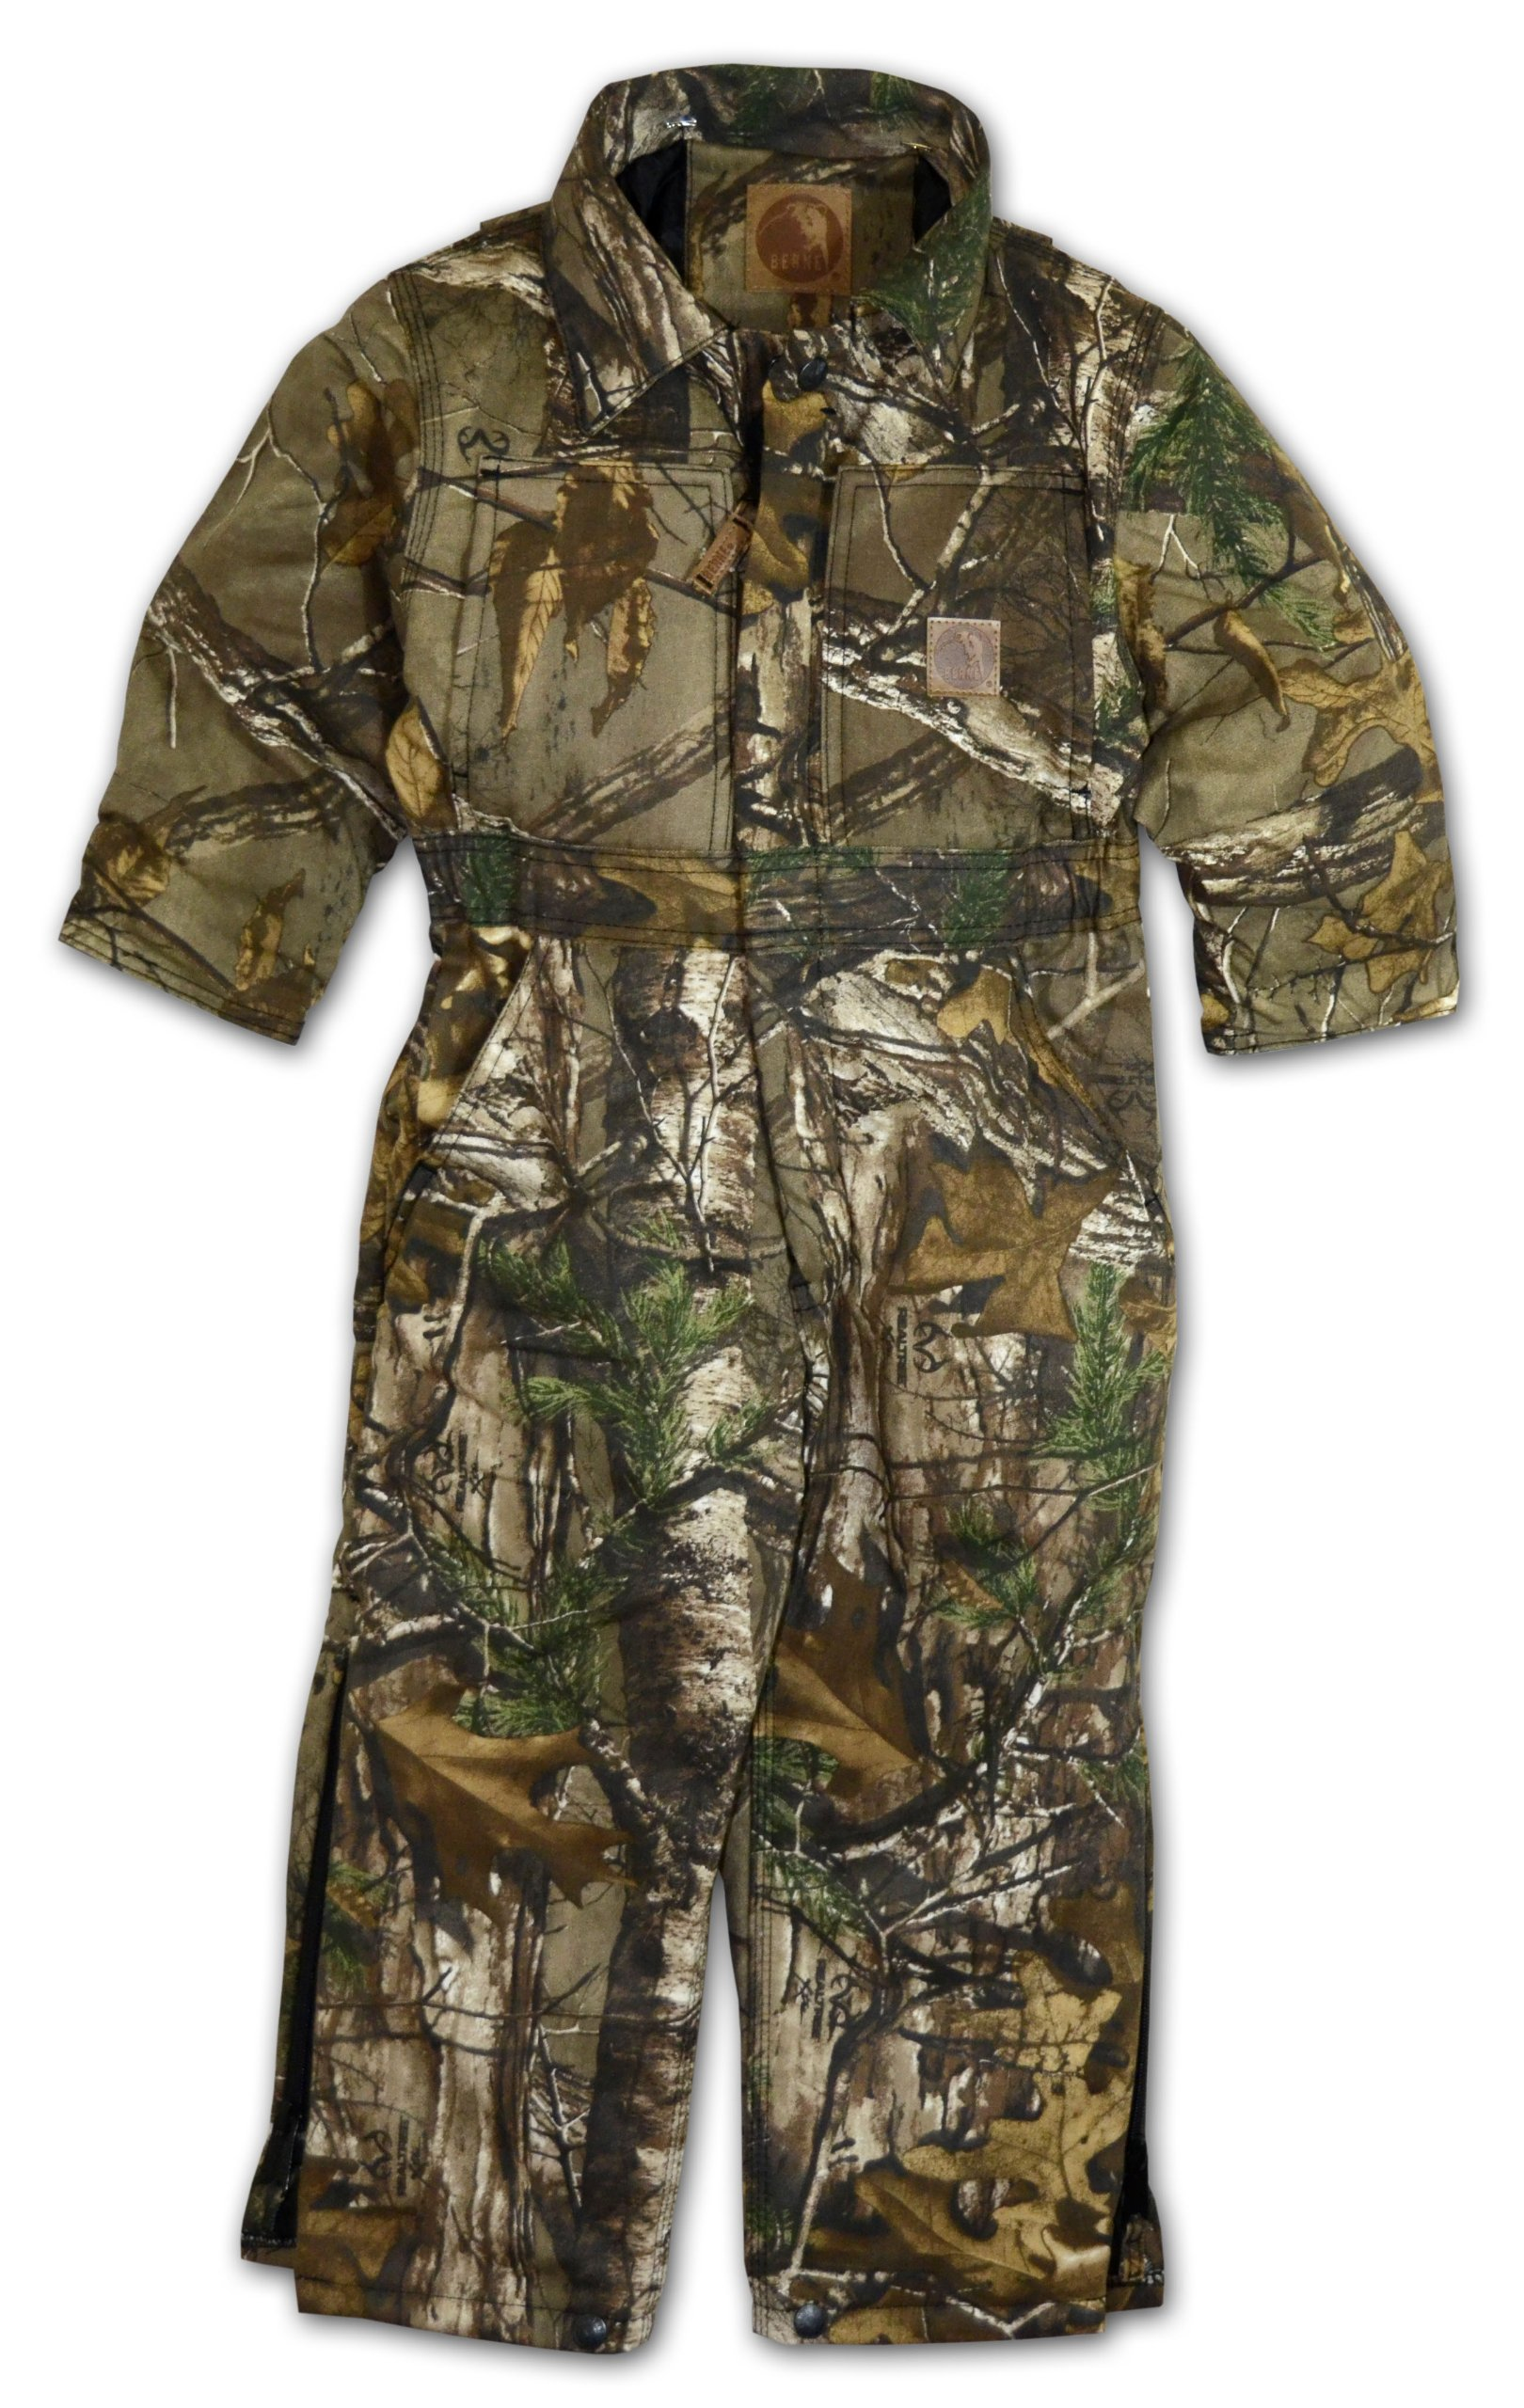 Berne Apparel GBI10 Youth's INS Coverall Realtree Xtra X-Large